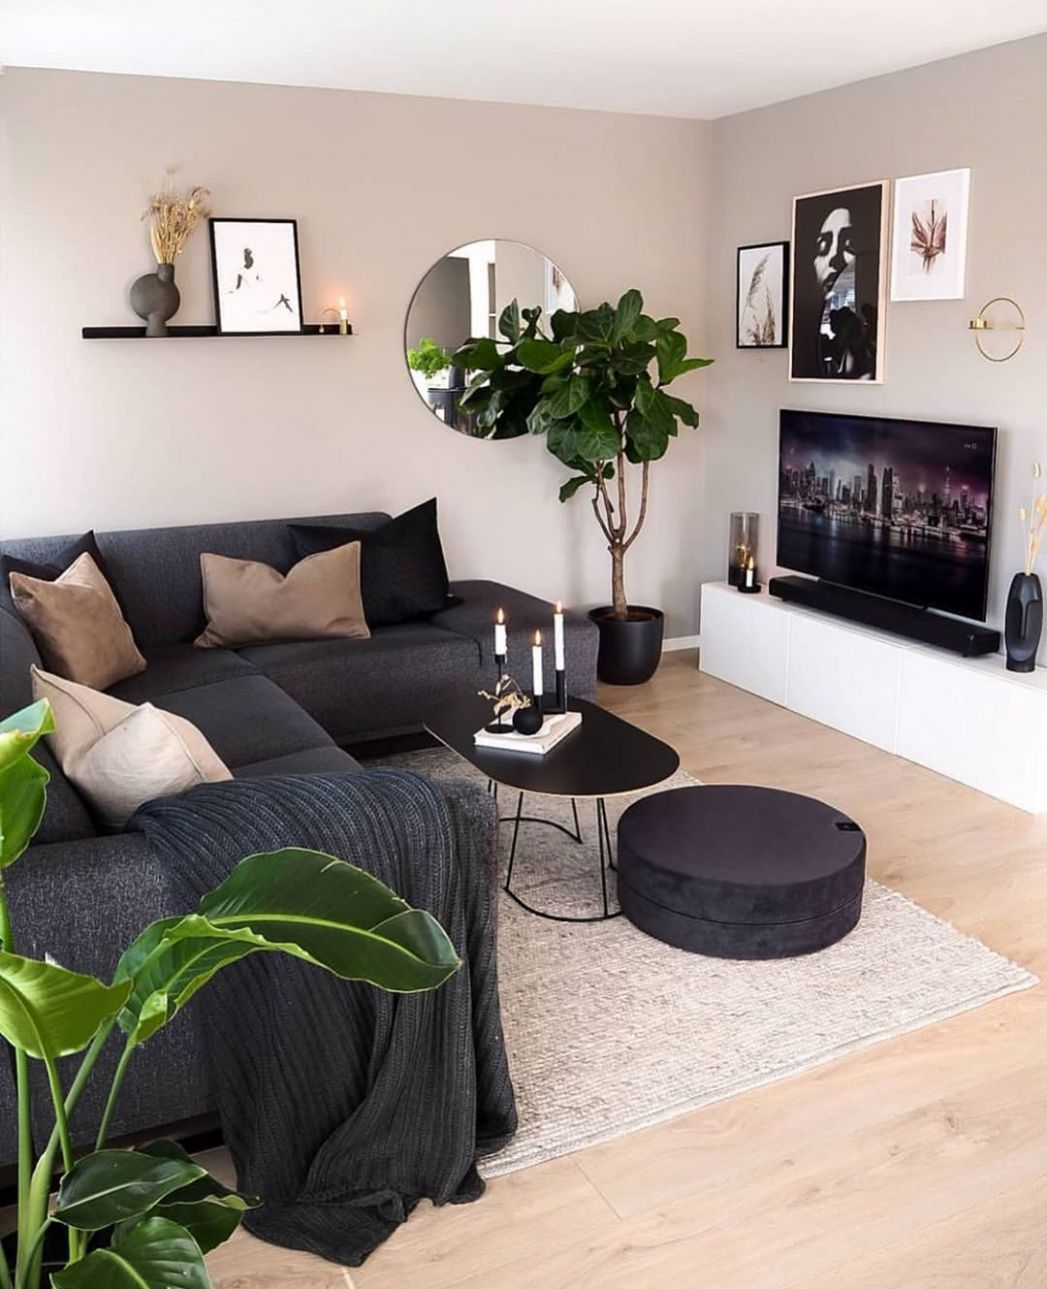 12 Best Living Room Decoration Ideas #homedecor #livingroomdecor ...